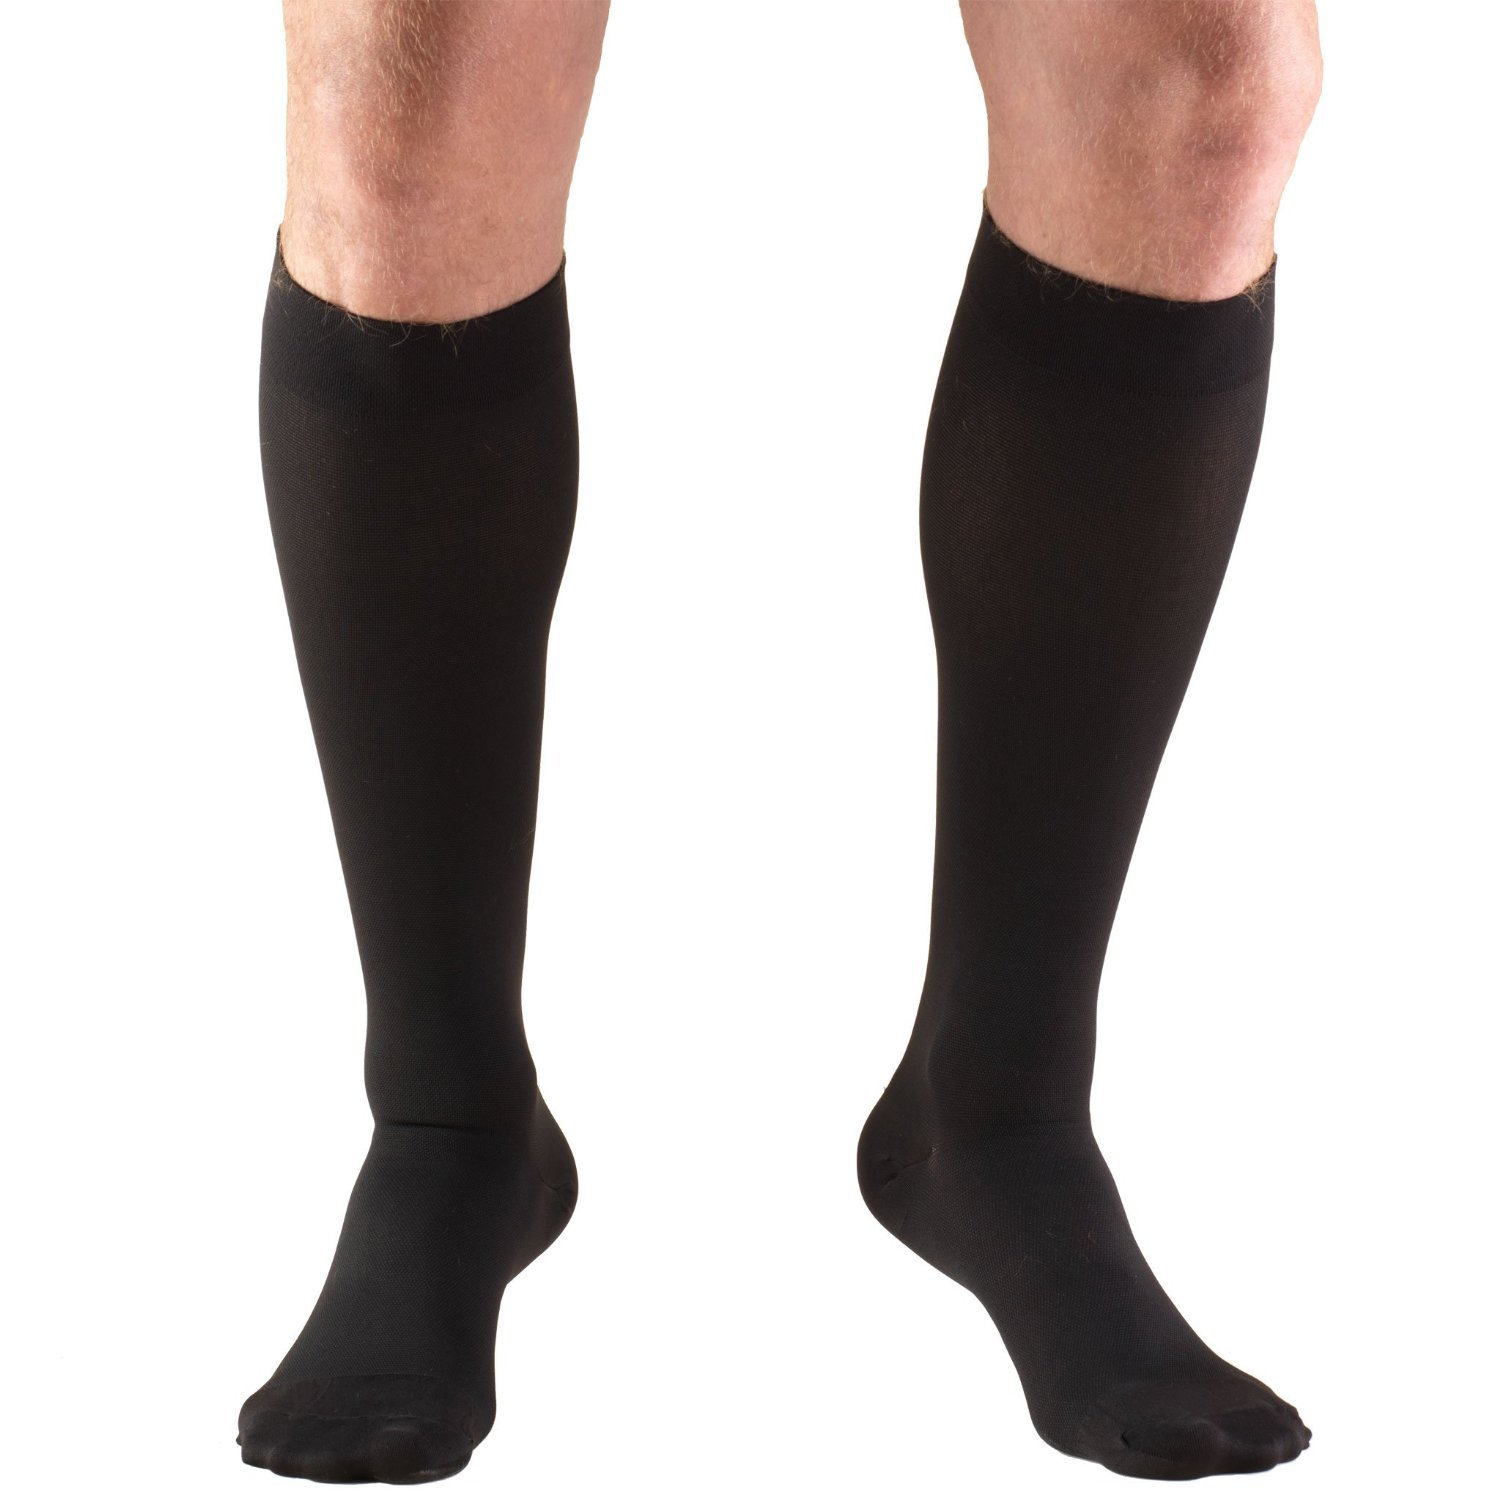 Truform 15-20 mmHg Knee High, Closed Toe Compression Stockings Black, X-Large